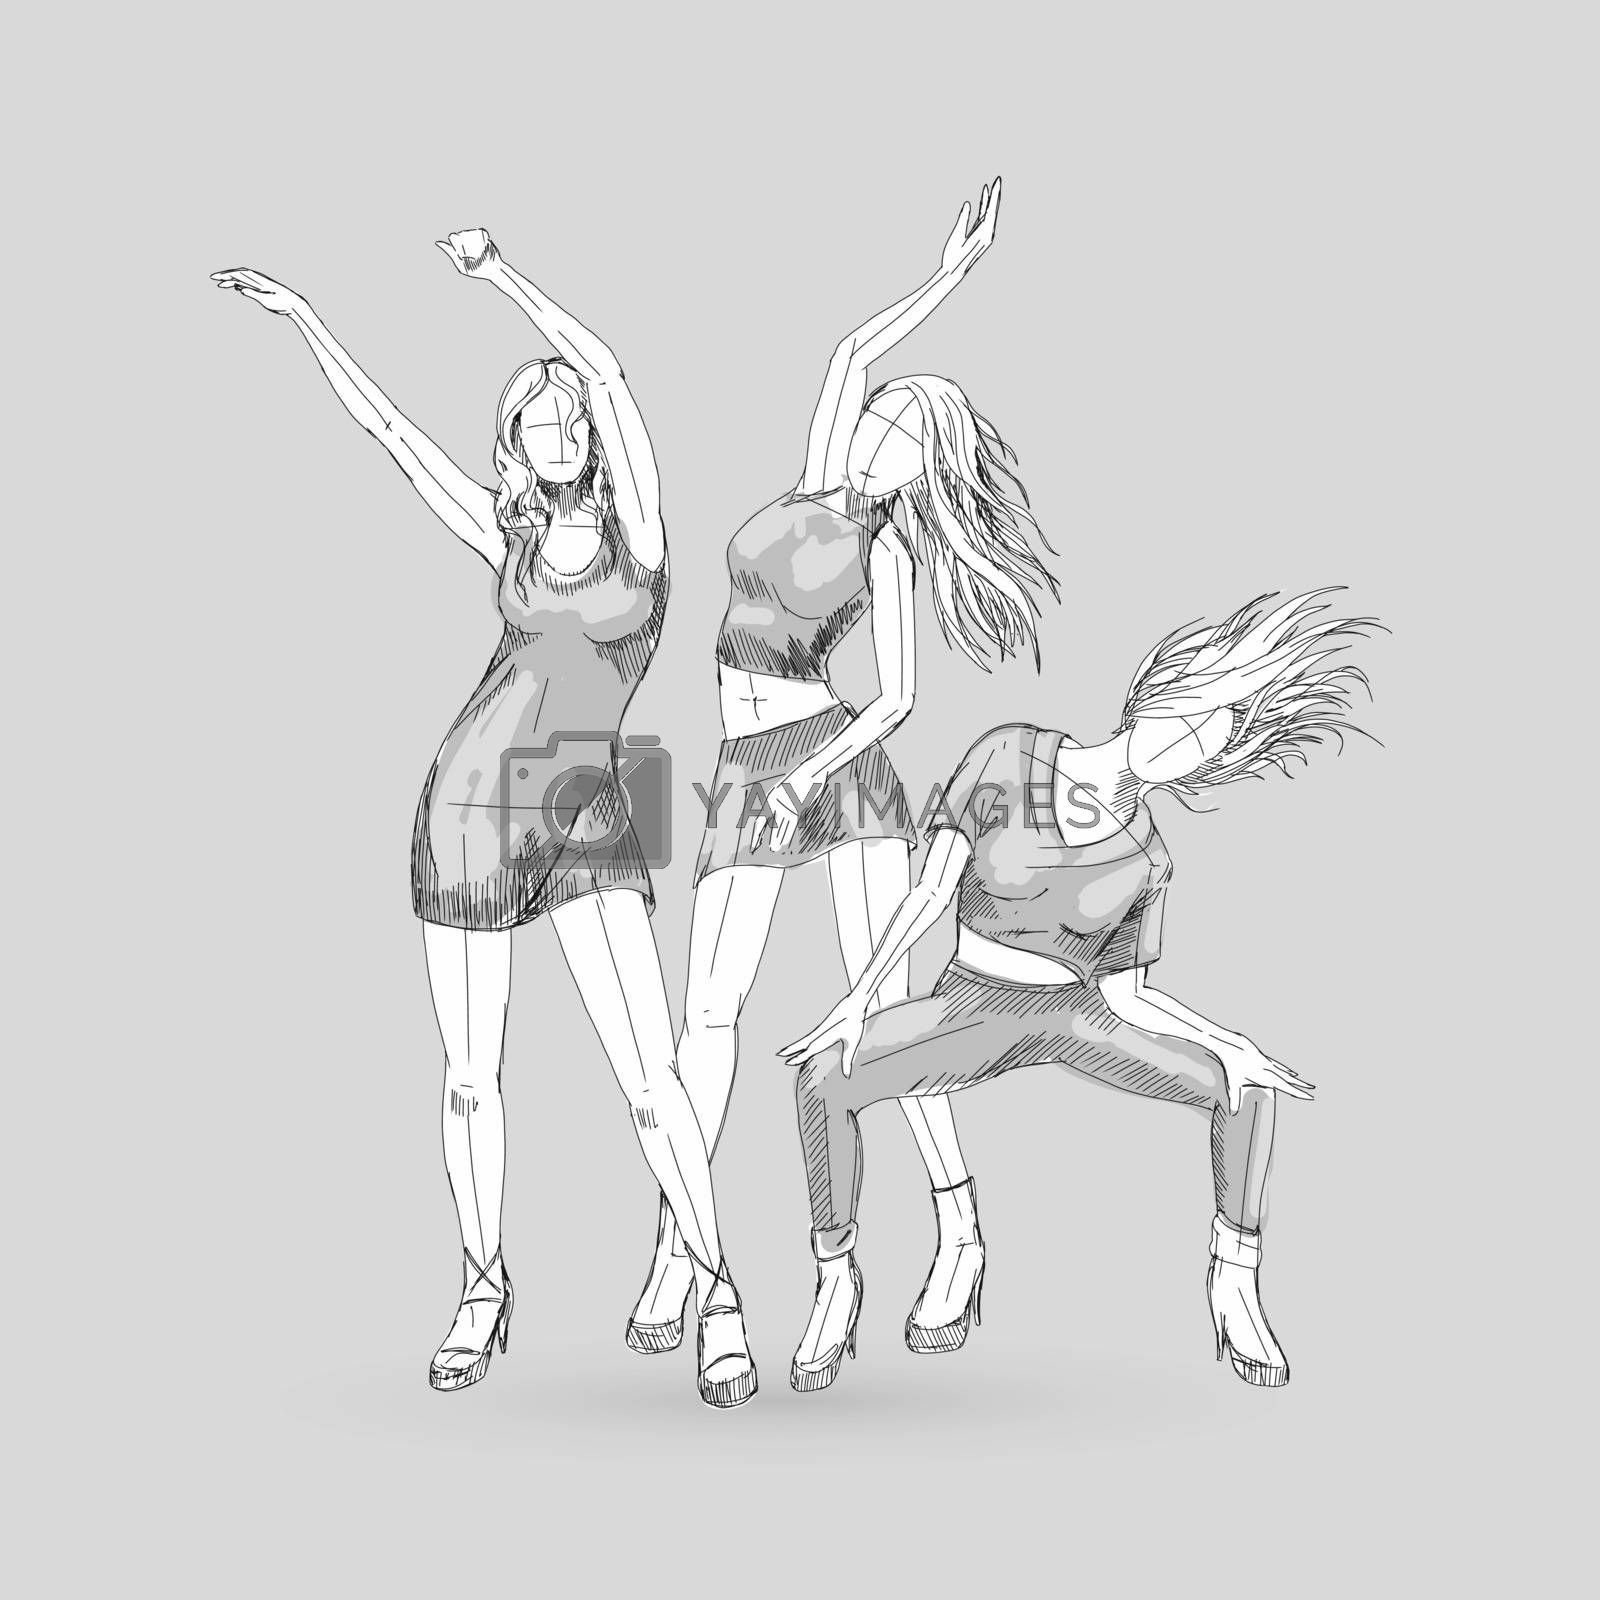 Sketchs of Go-Go Dance Girls. Illustration Silhouettes of Womans on White Background for Design